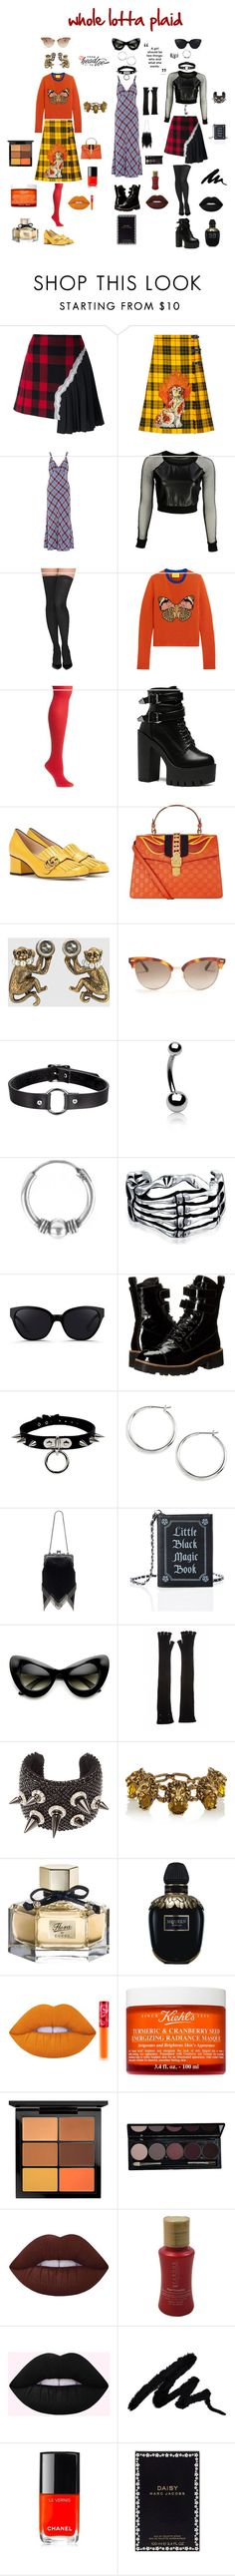 """""""WHOLE LOTTA PLAID"""" by giagiagia ❤ liked on Polyvore featuring Maison Margiela, Gucci, Marc Jacobs, VIPARO, Commando, Hue, Bling Jewelry, Urbiana, 3.1 Phillip Lim and Shellys"""